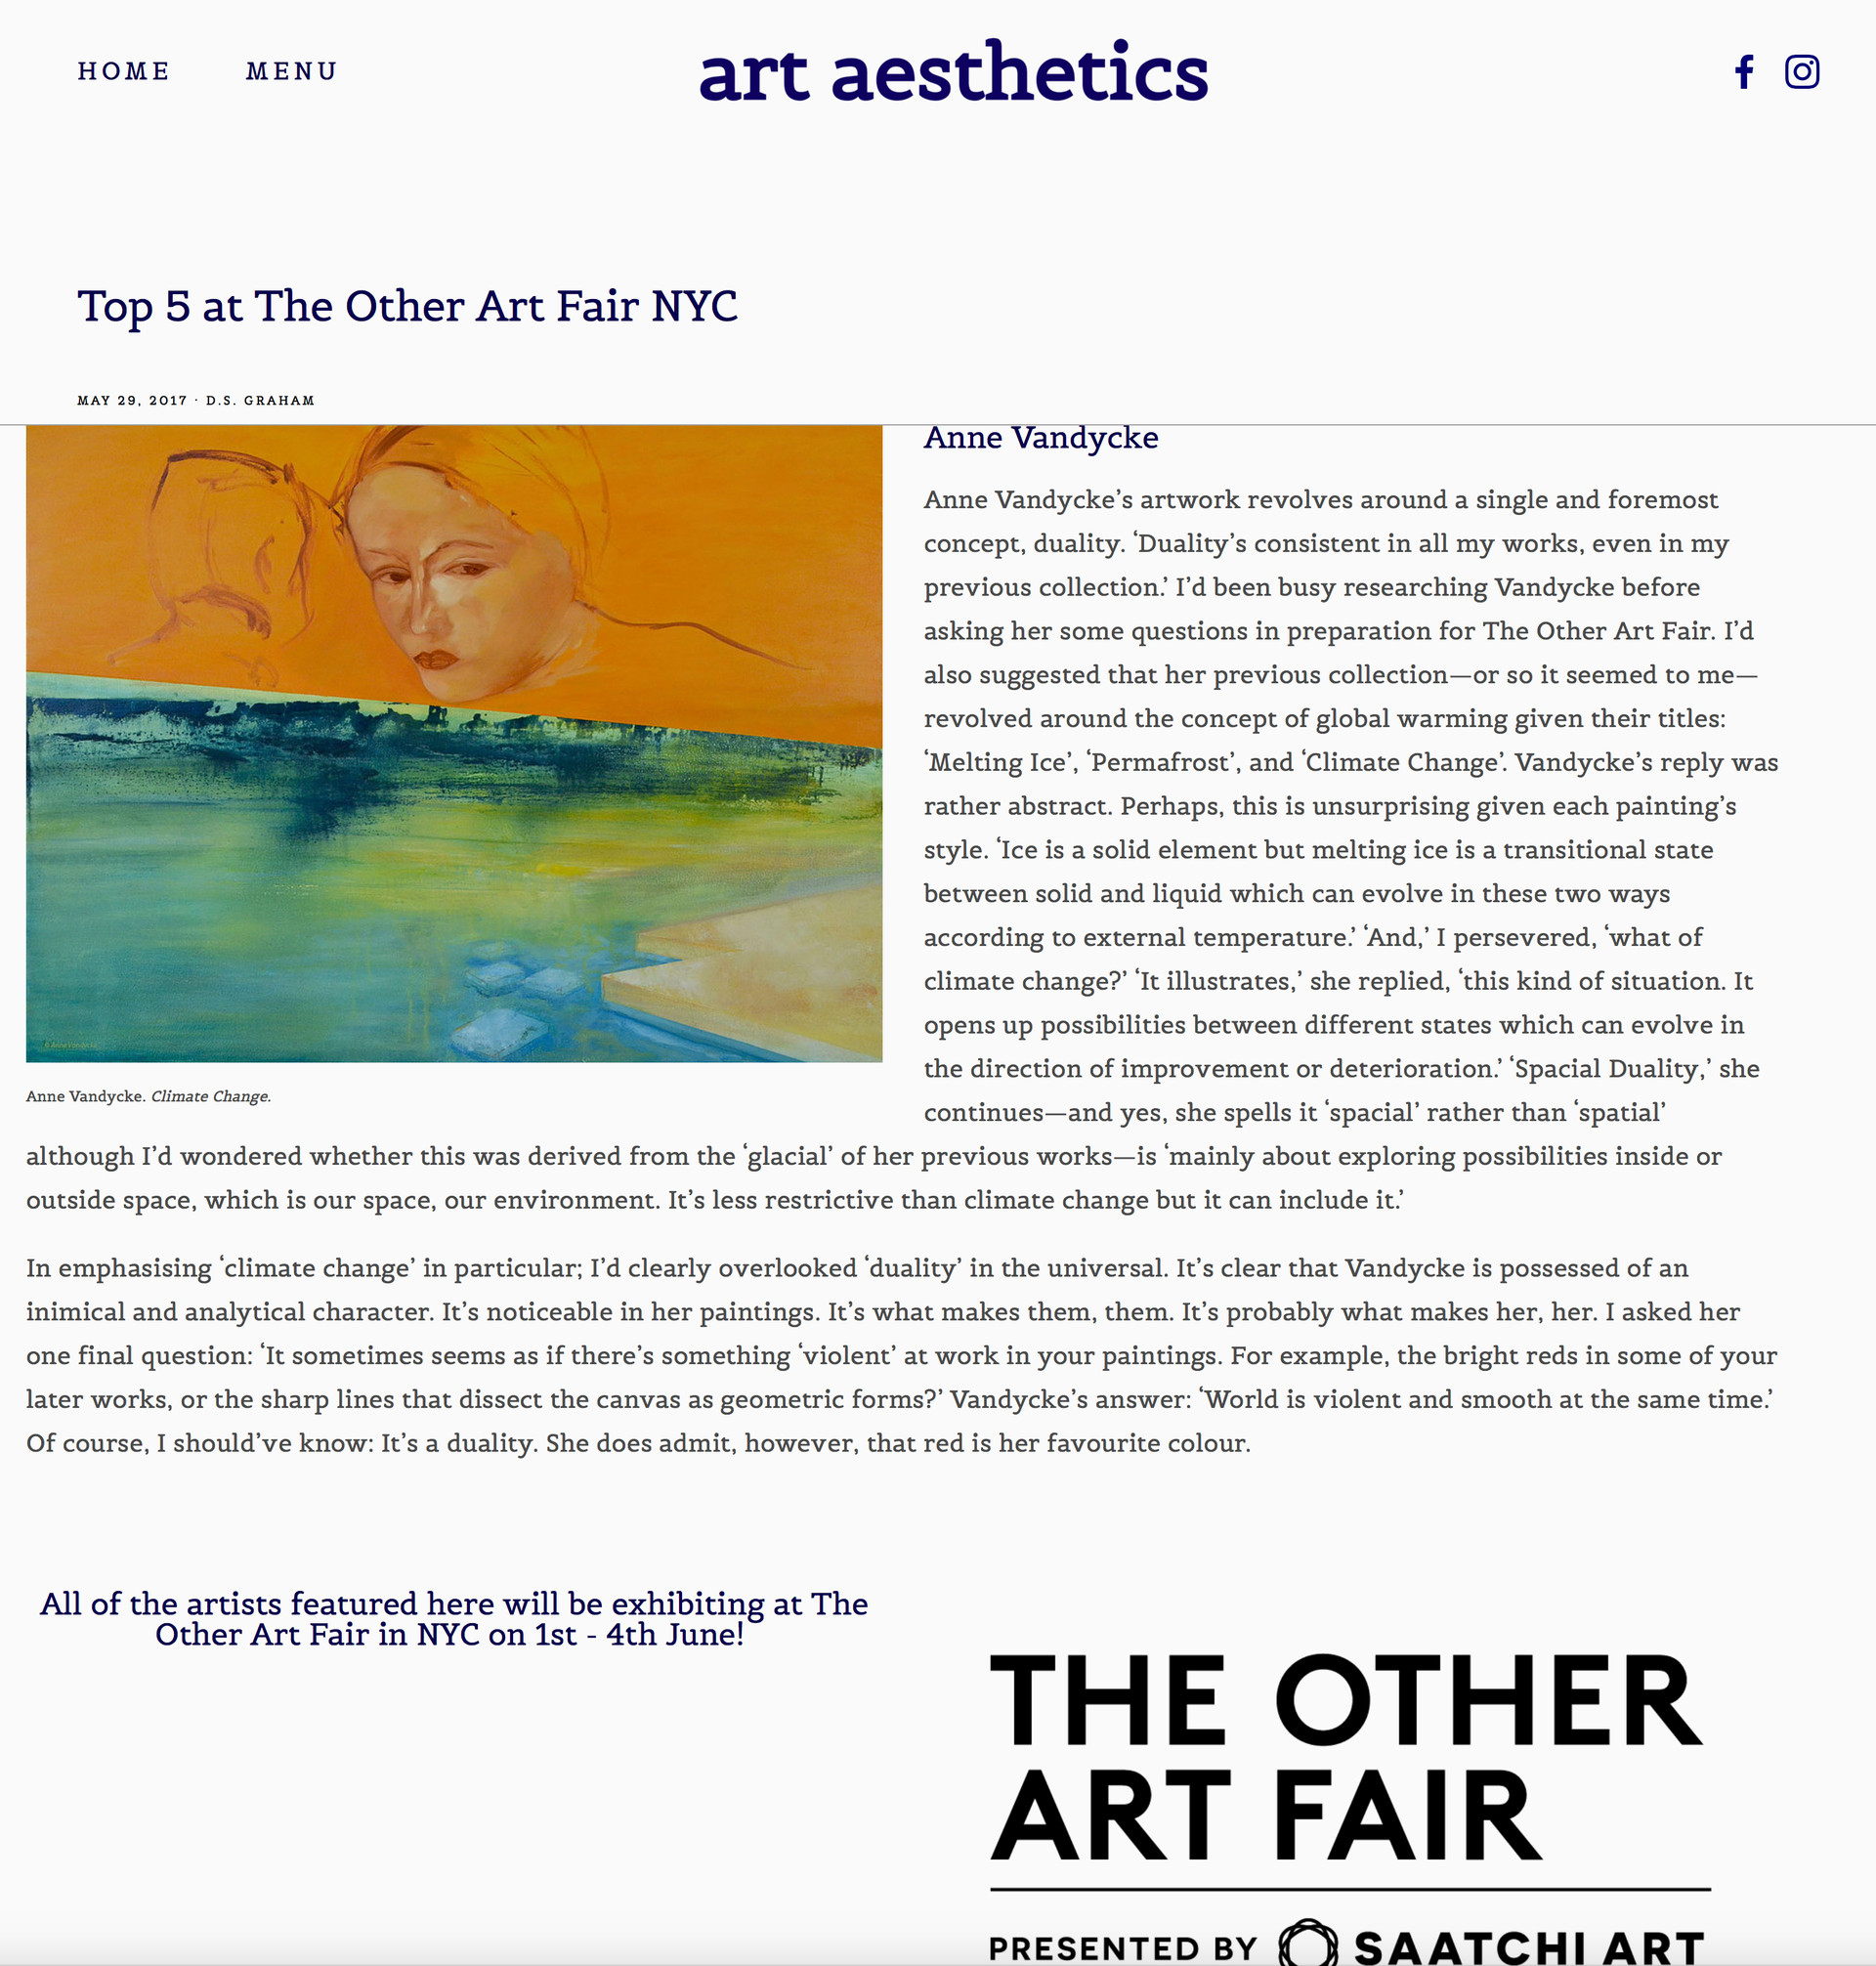 Art Aesthetics Article